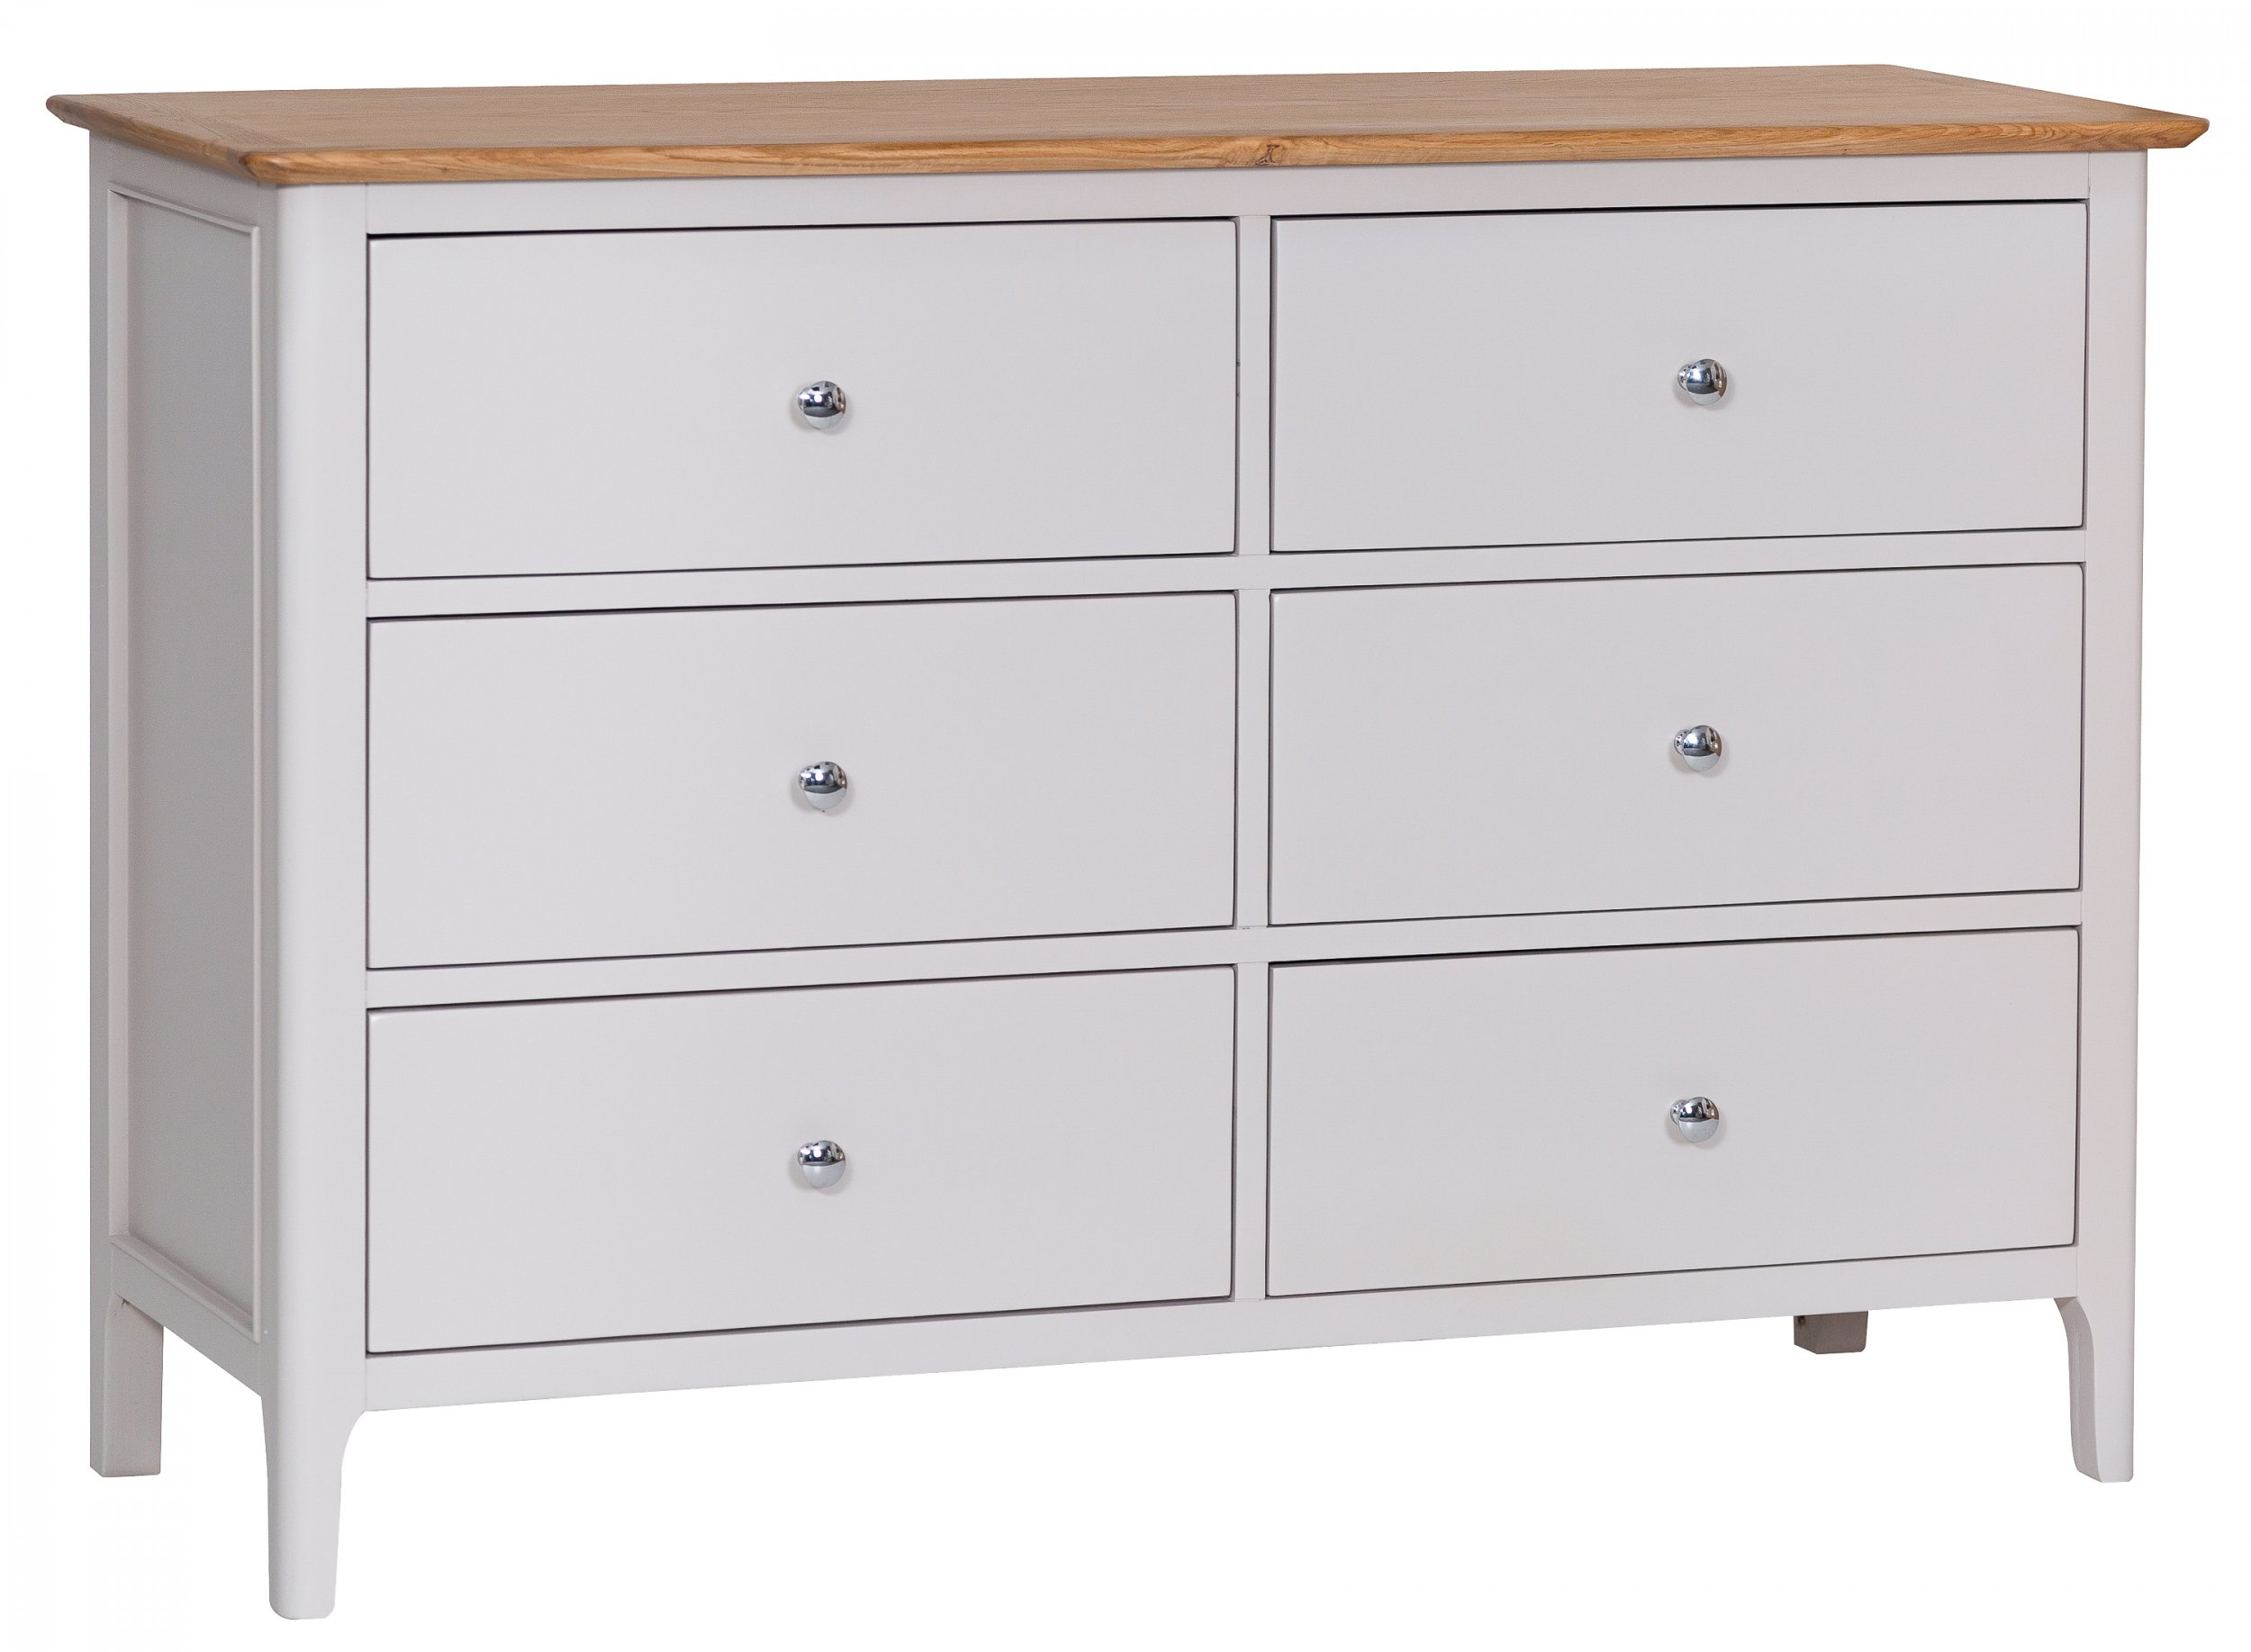 Nordby Painted Bedroom 6 Drawer Chest The Clearance Zone